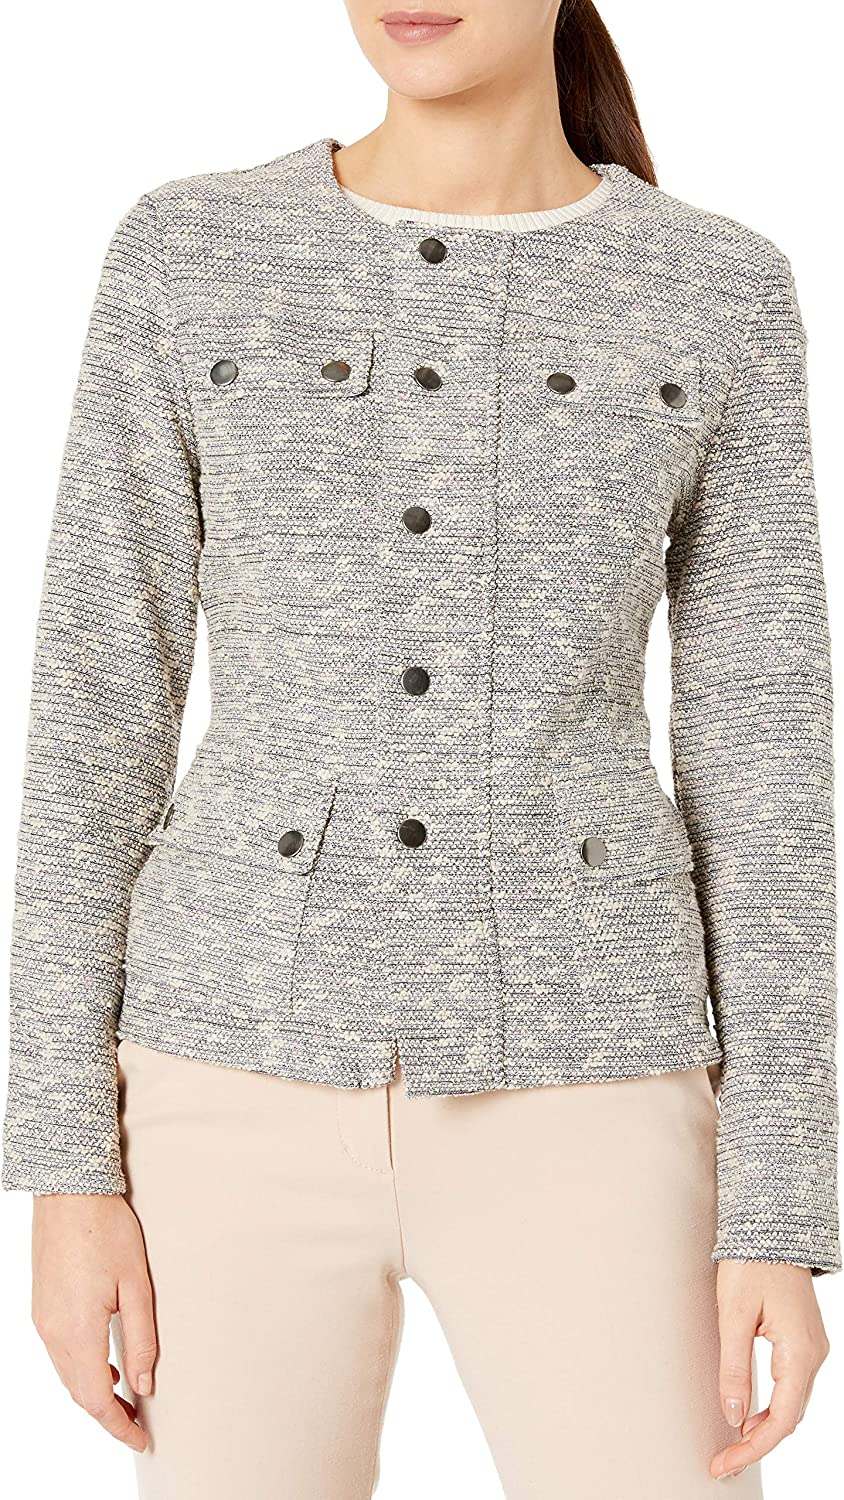 NIC+ZOE Women's The Ritz Jacket